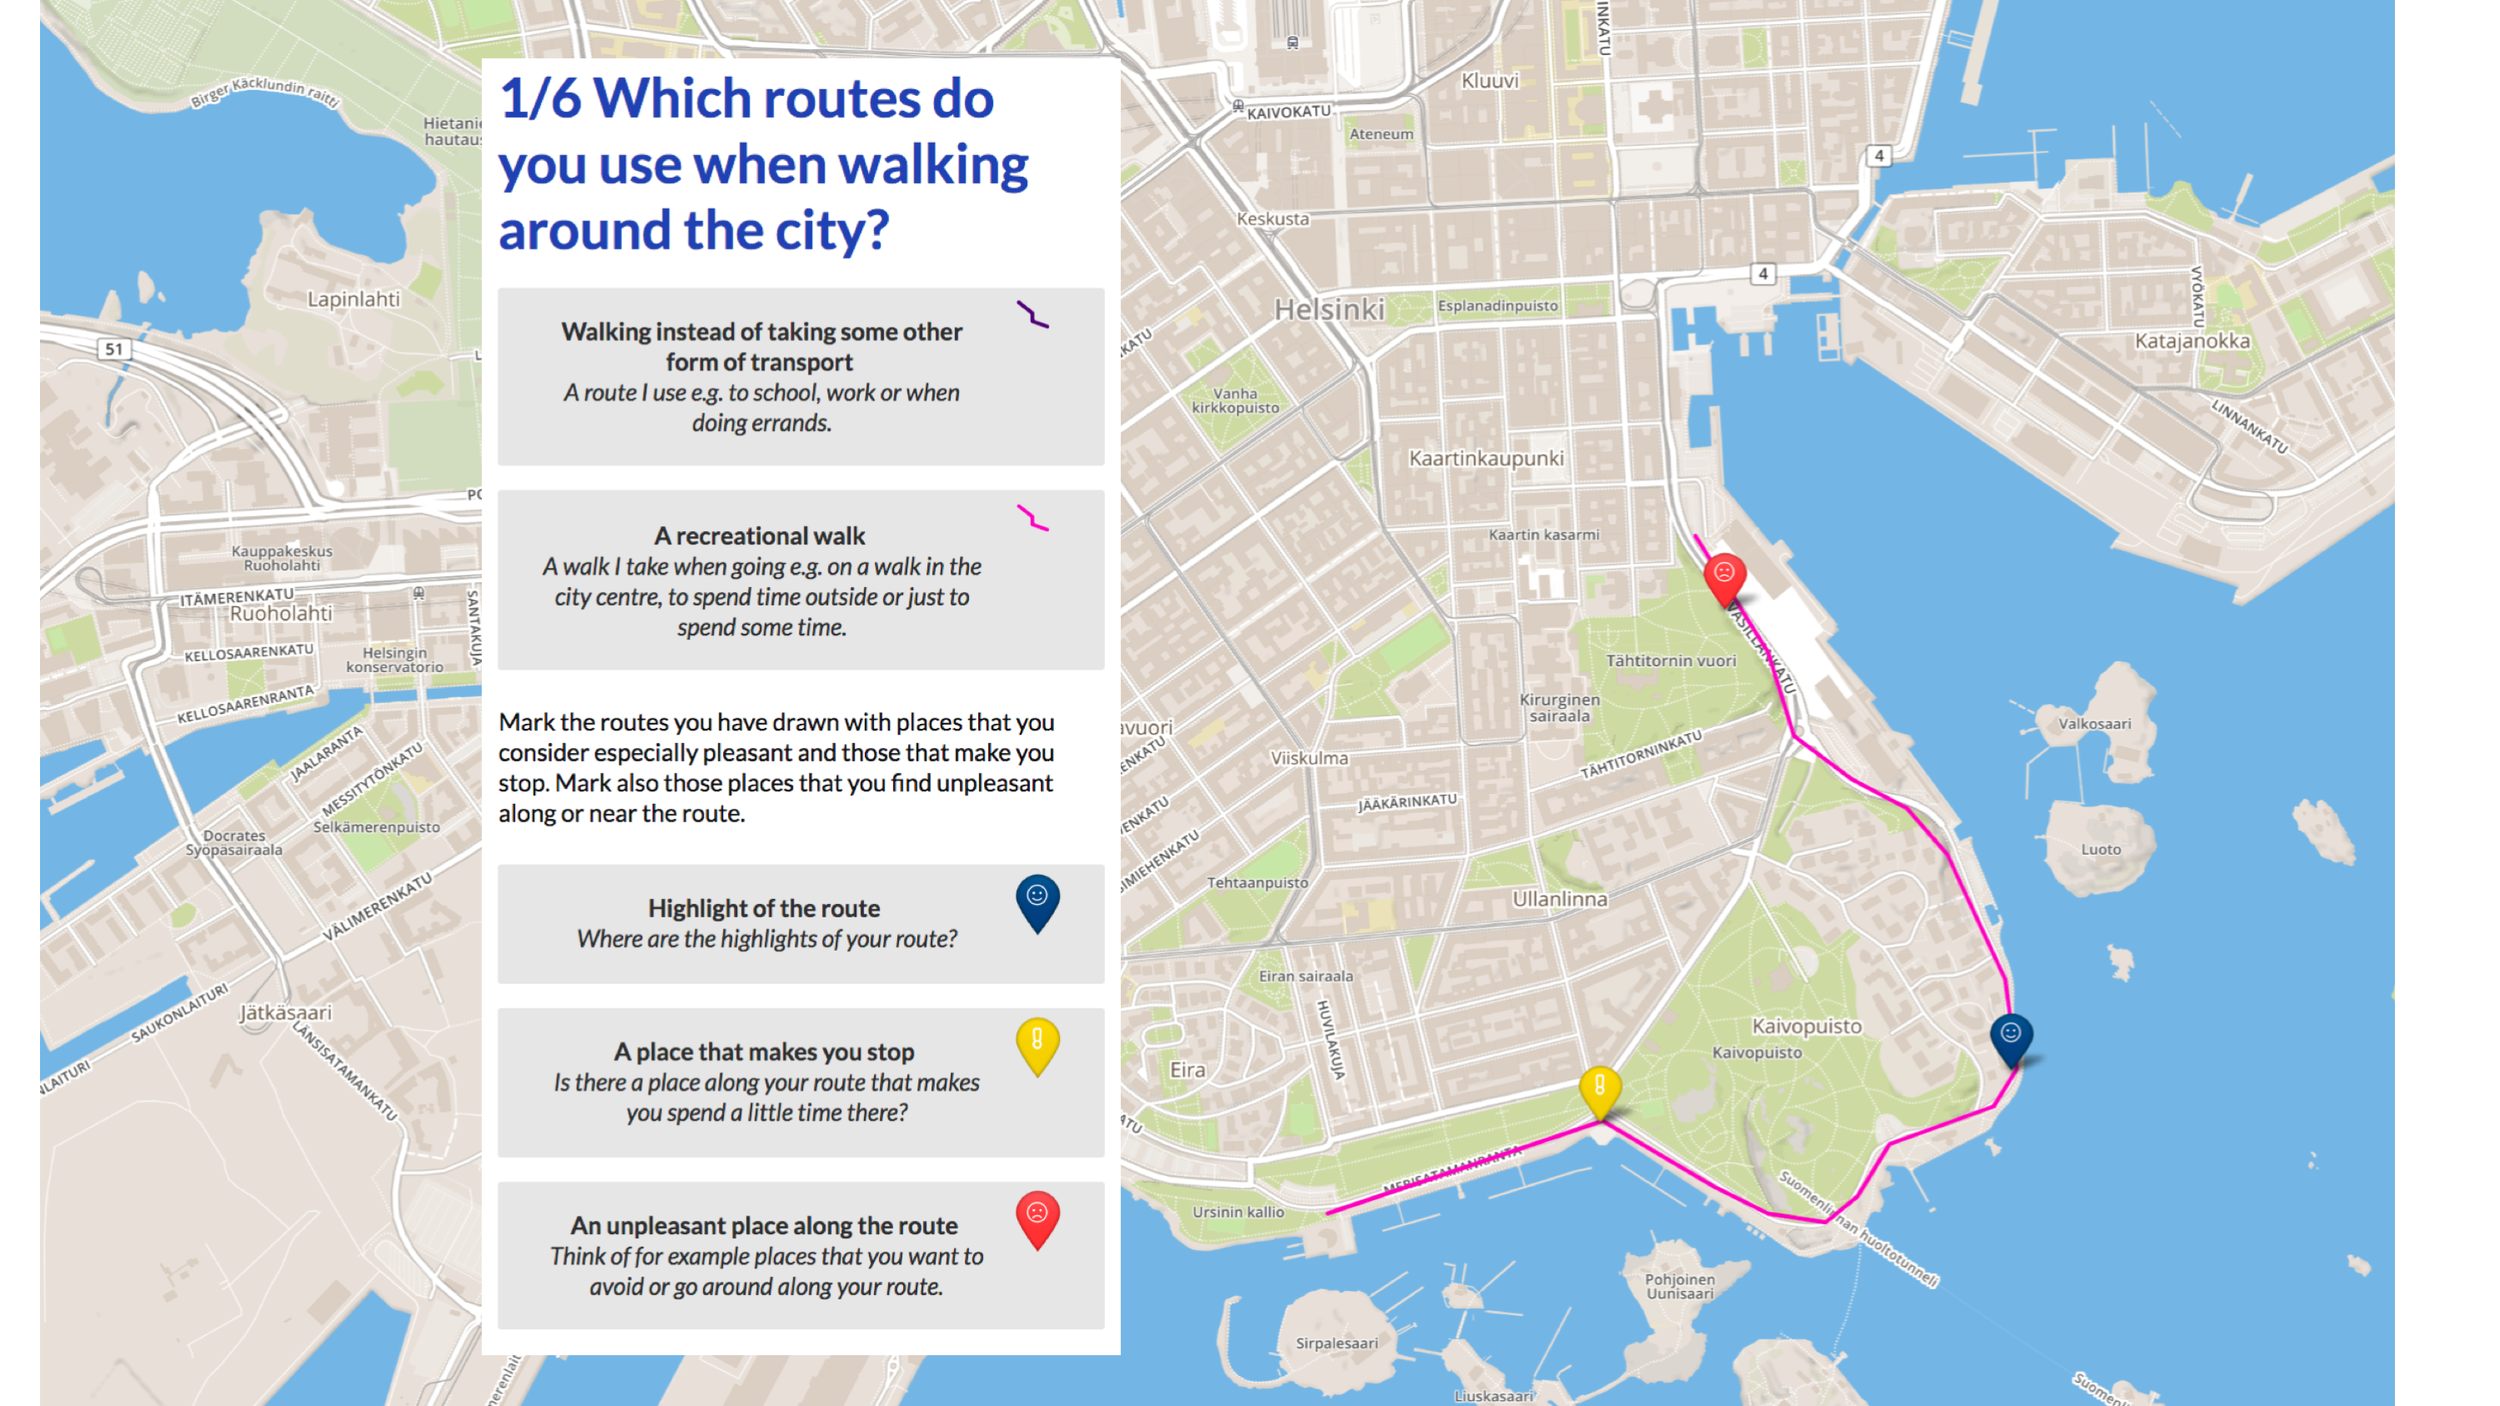 Picture 1: The respondents were asked to draw their everyday routes on a map. They could also mark places along their routes that they find unpleasant as well as the highlights of the routes or places that make them stop.